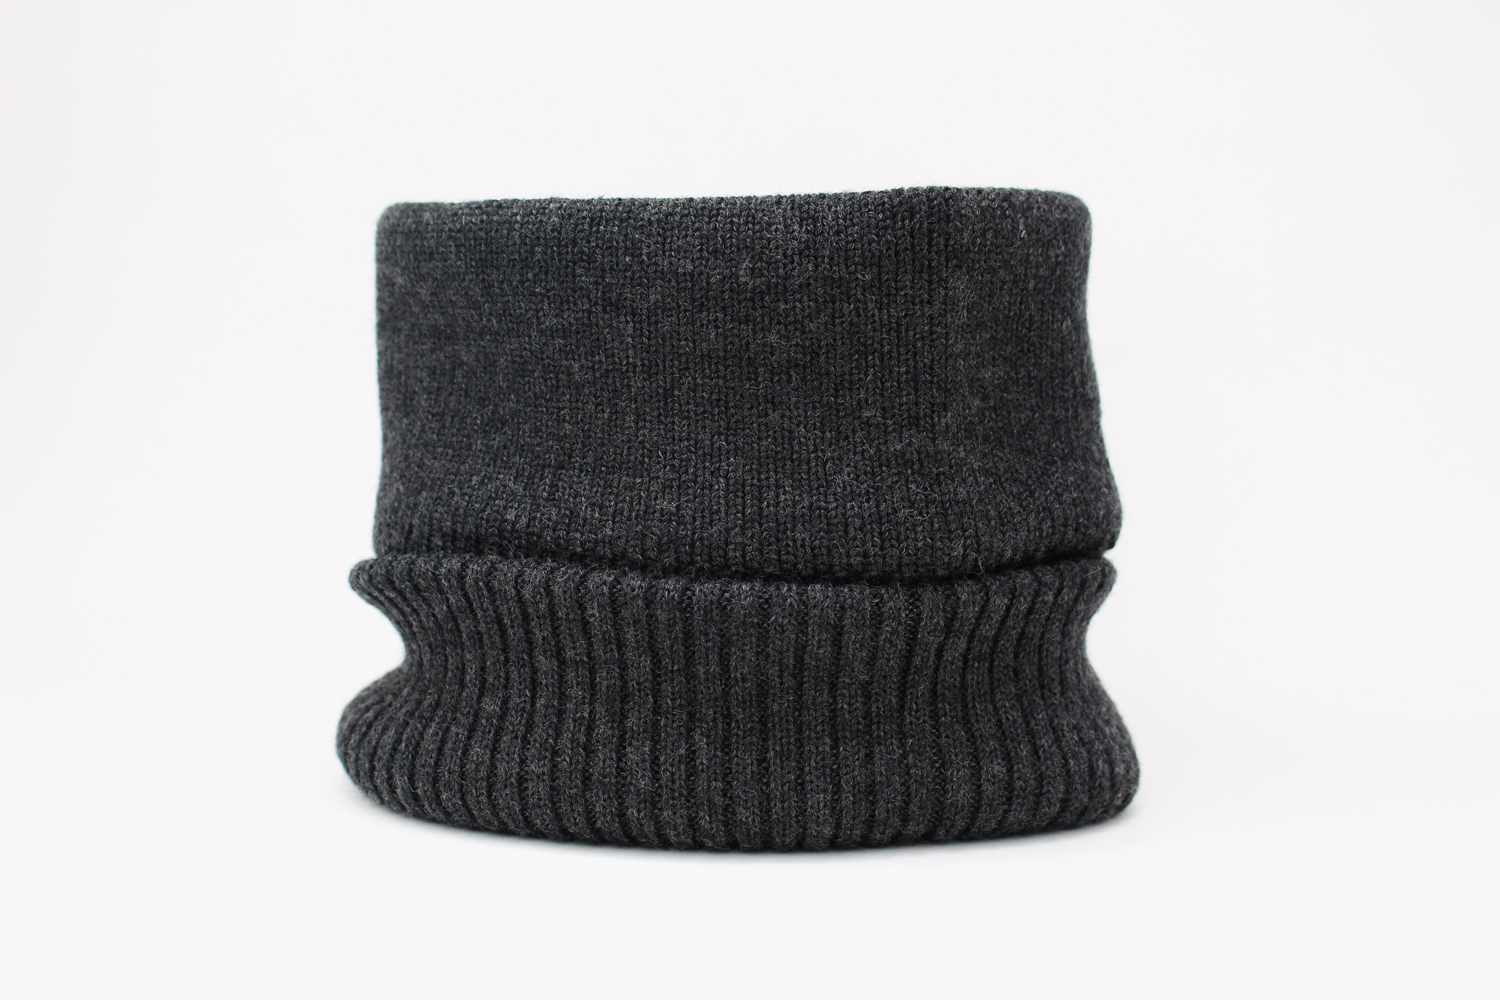 COMESANDGOES_HEAD-BAND&NECK-WARMER_c.GRAY_9500_2